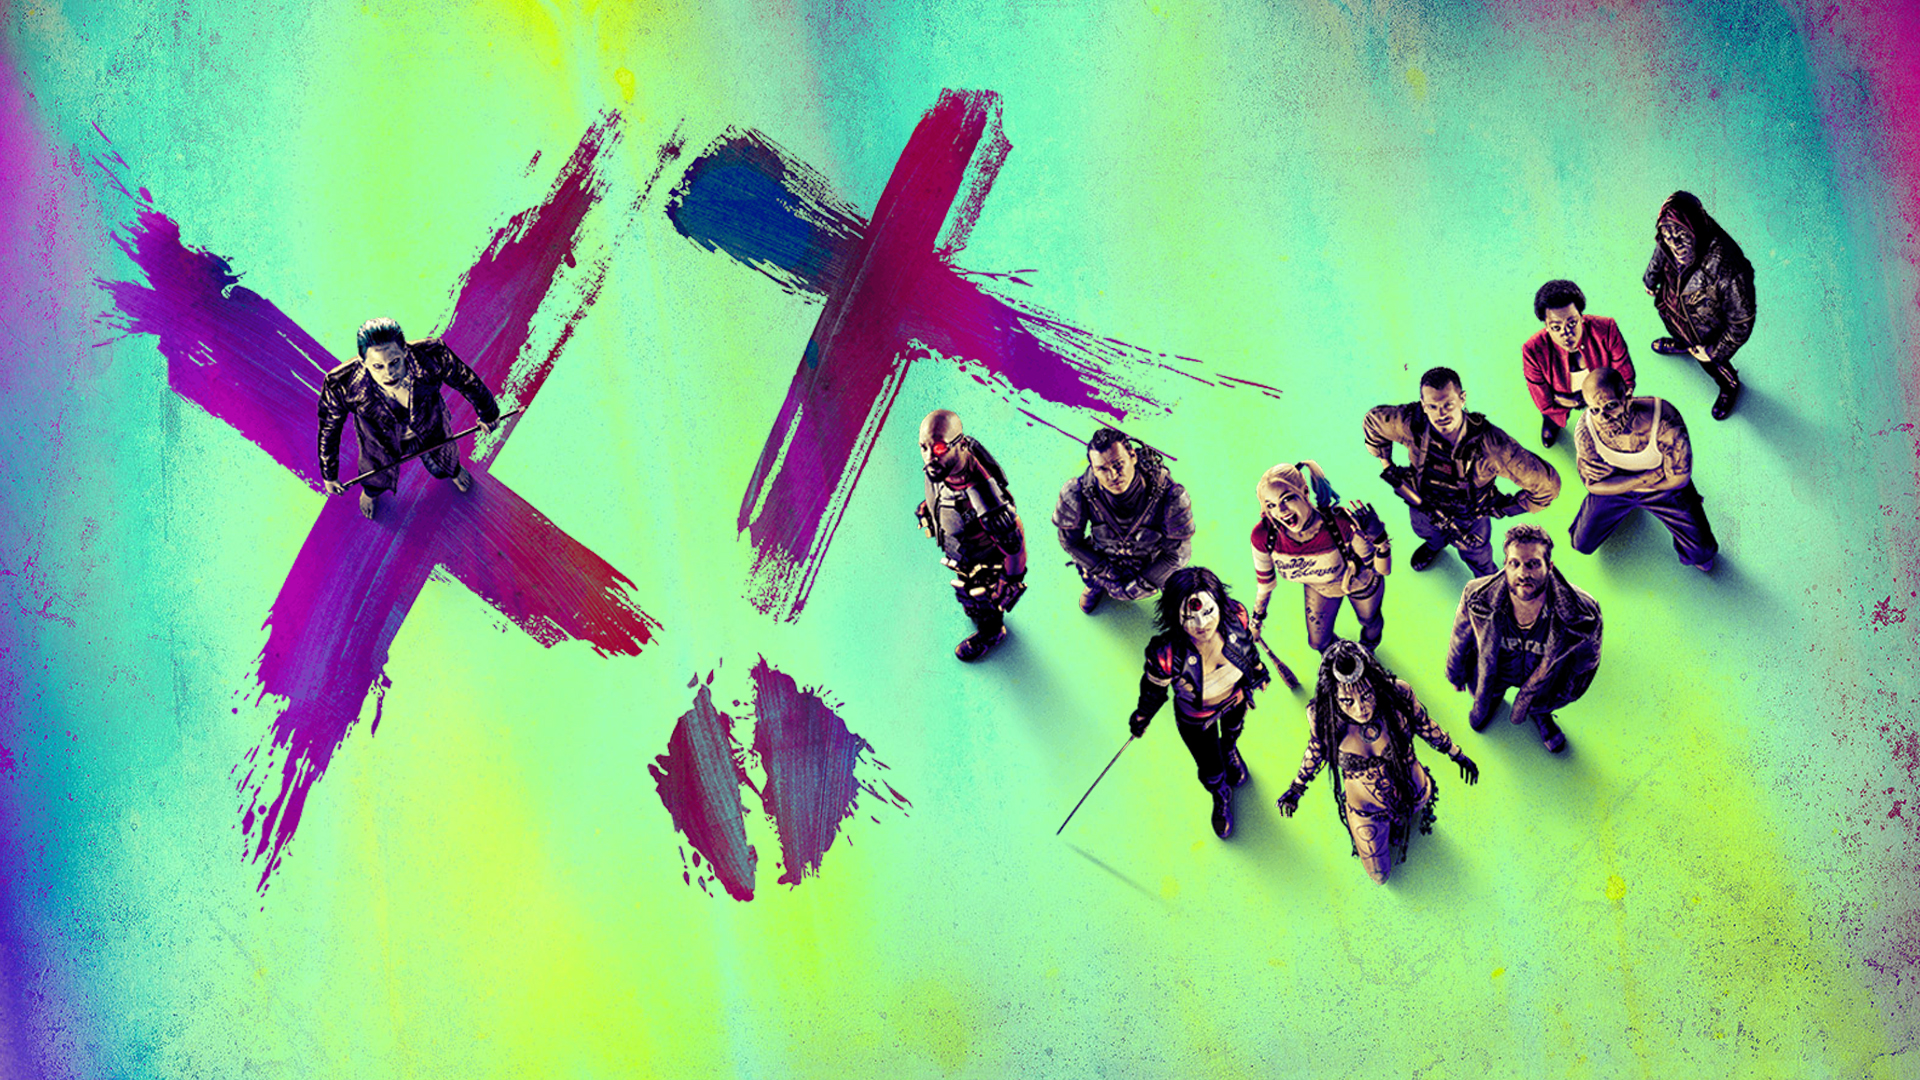 Suicide Squad Wallpaper 1920x1080 By Sachso74 On DeviantArt